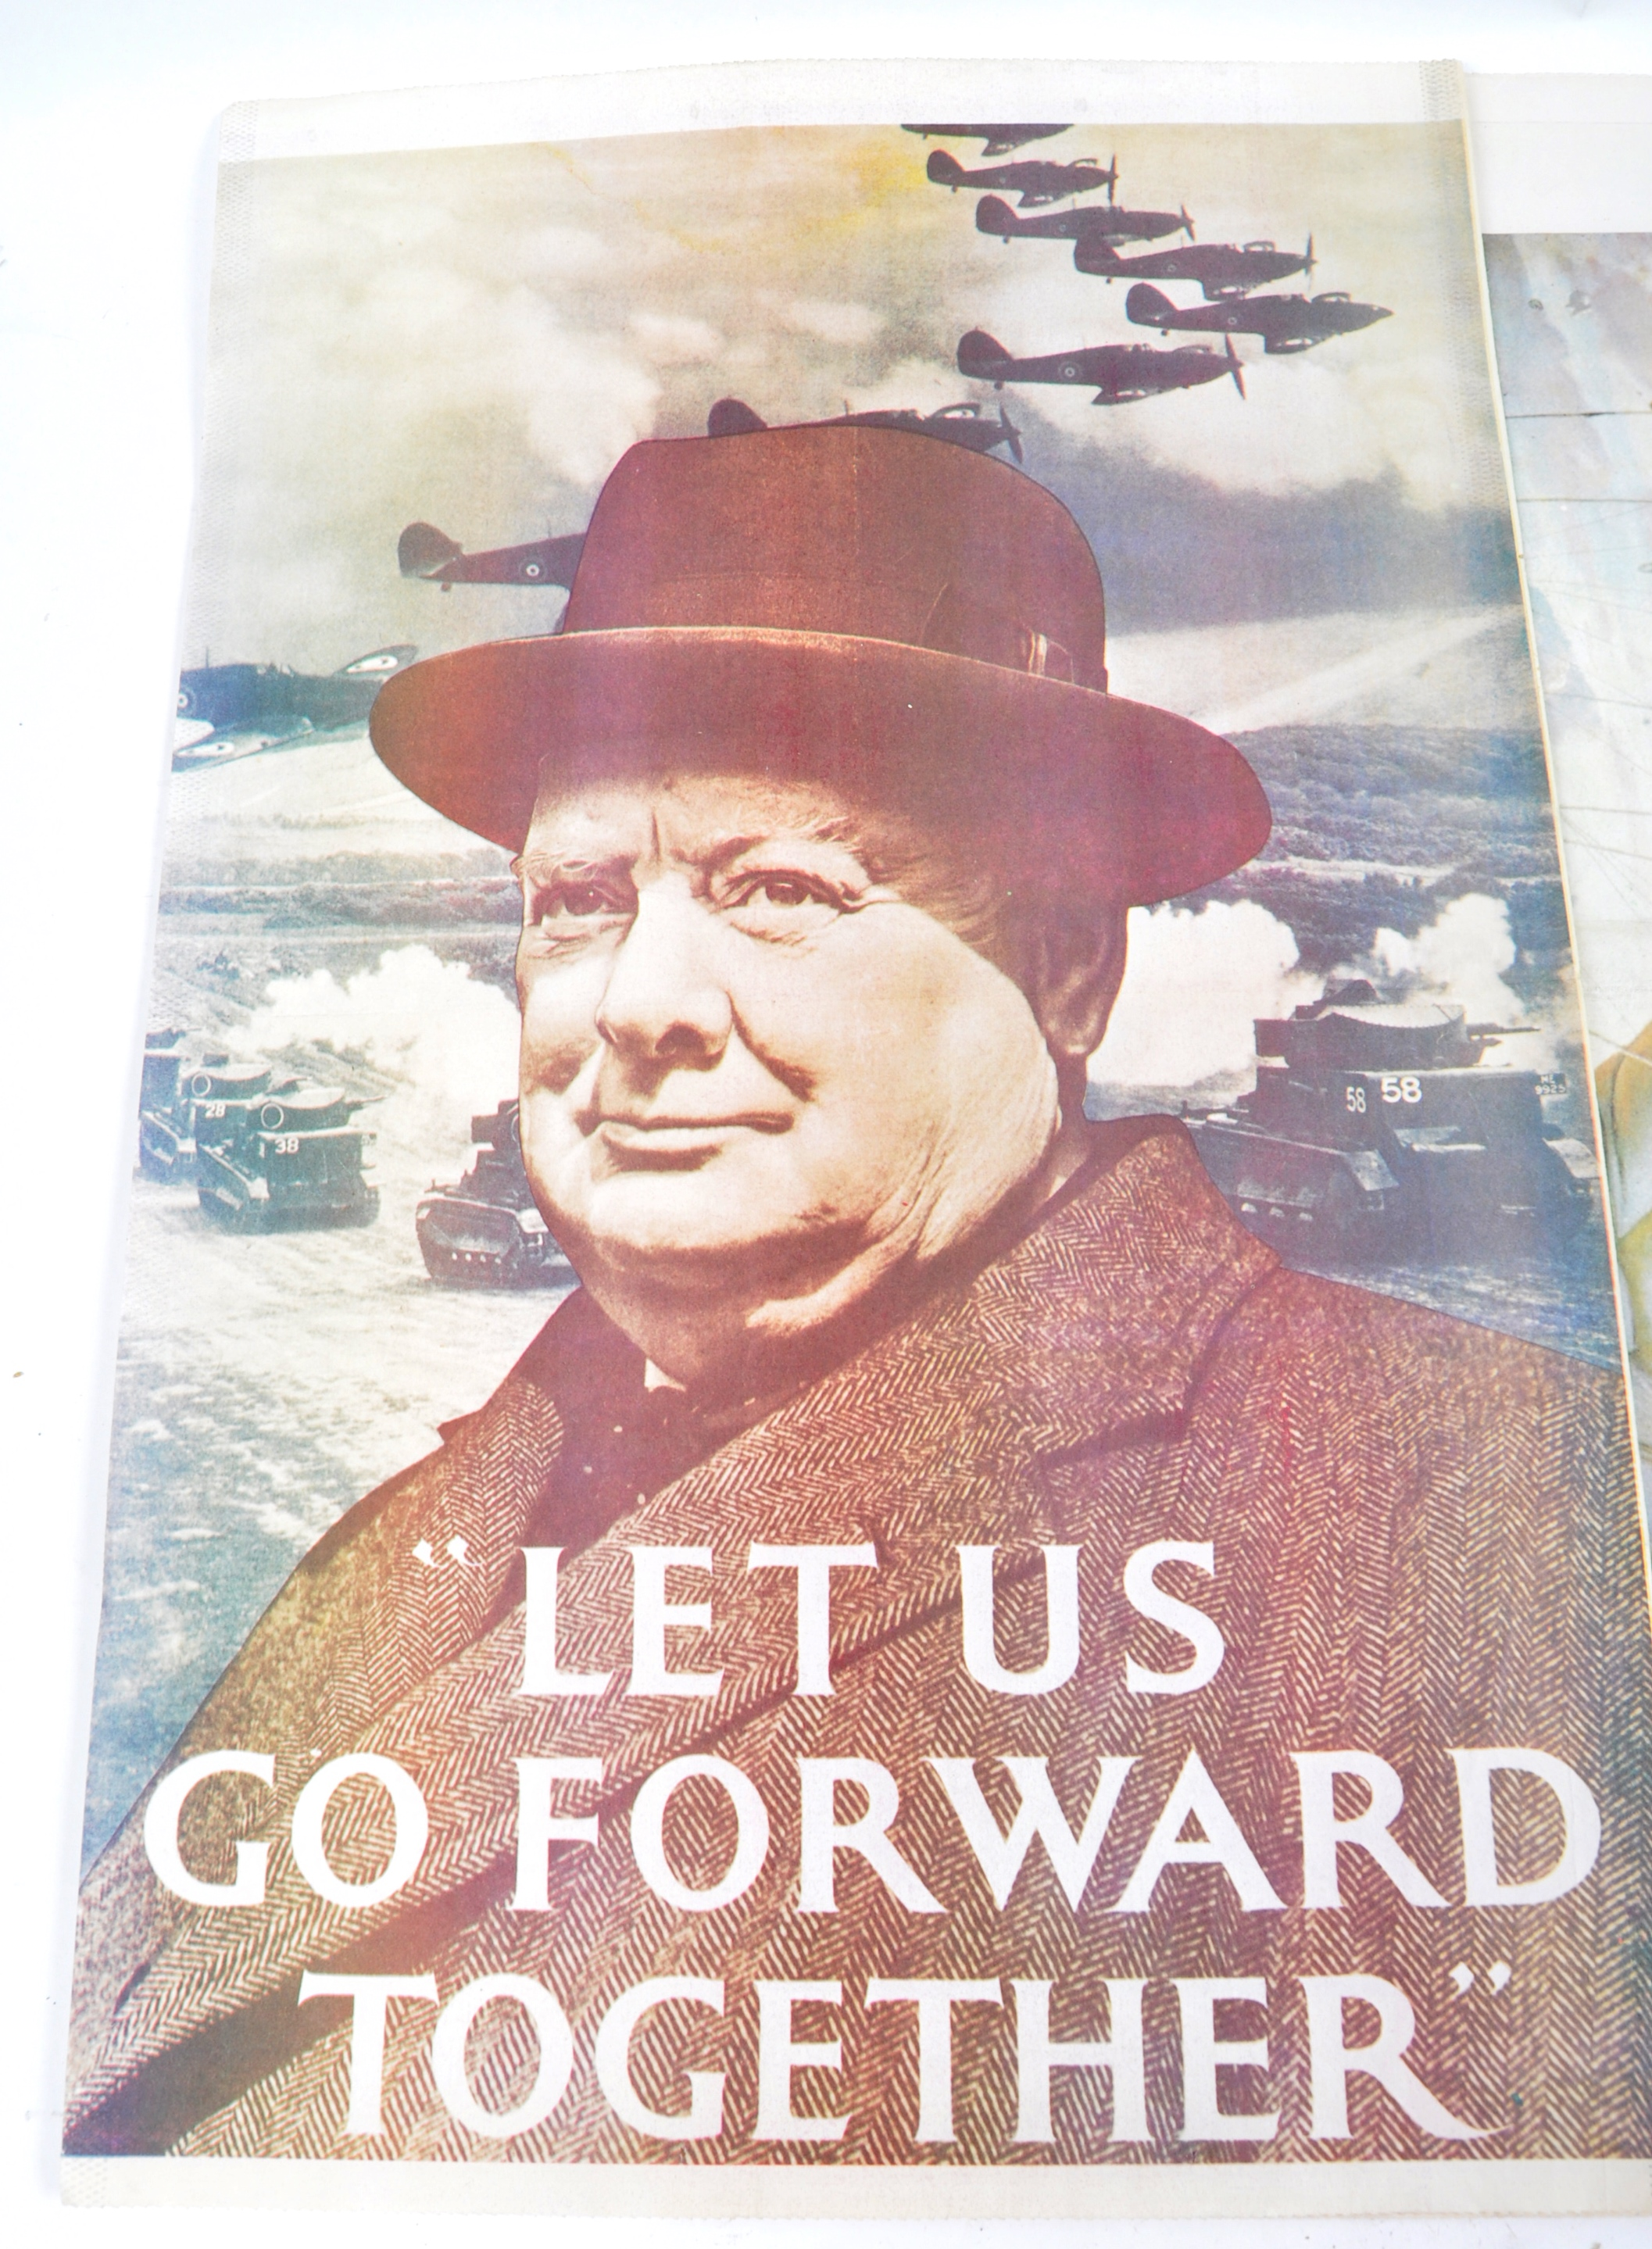 WWII SECOND WORLD WAR POSTERS - CHURCHILL, AFS, HOME FRONT ETC - Image 2 of 6